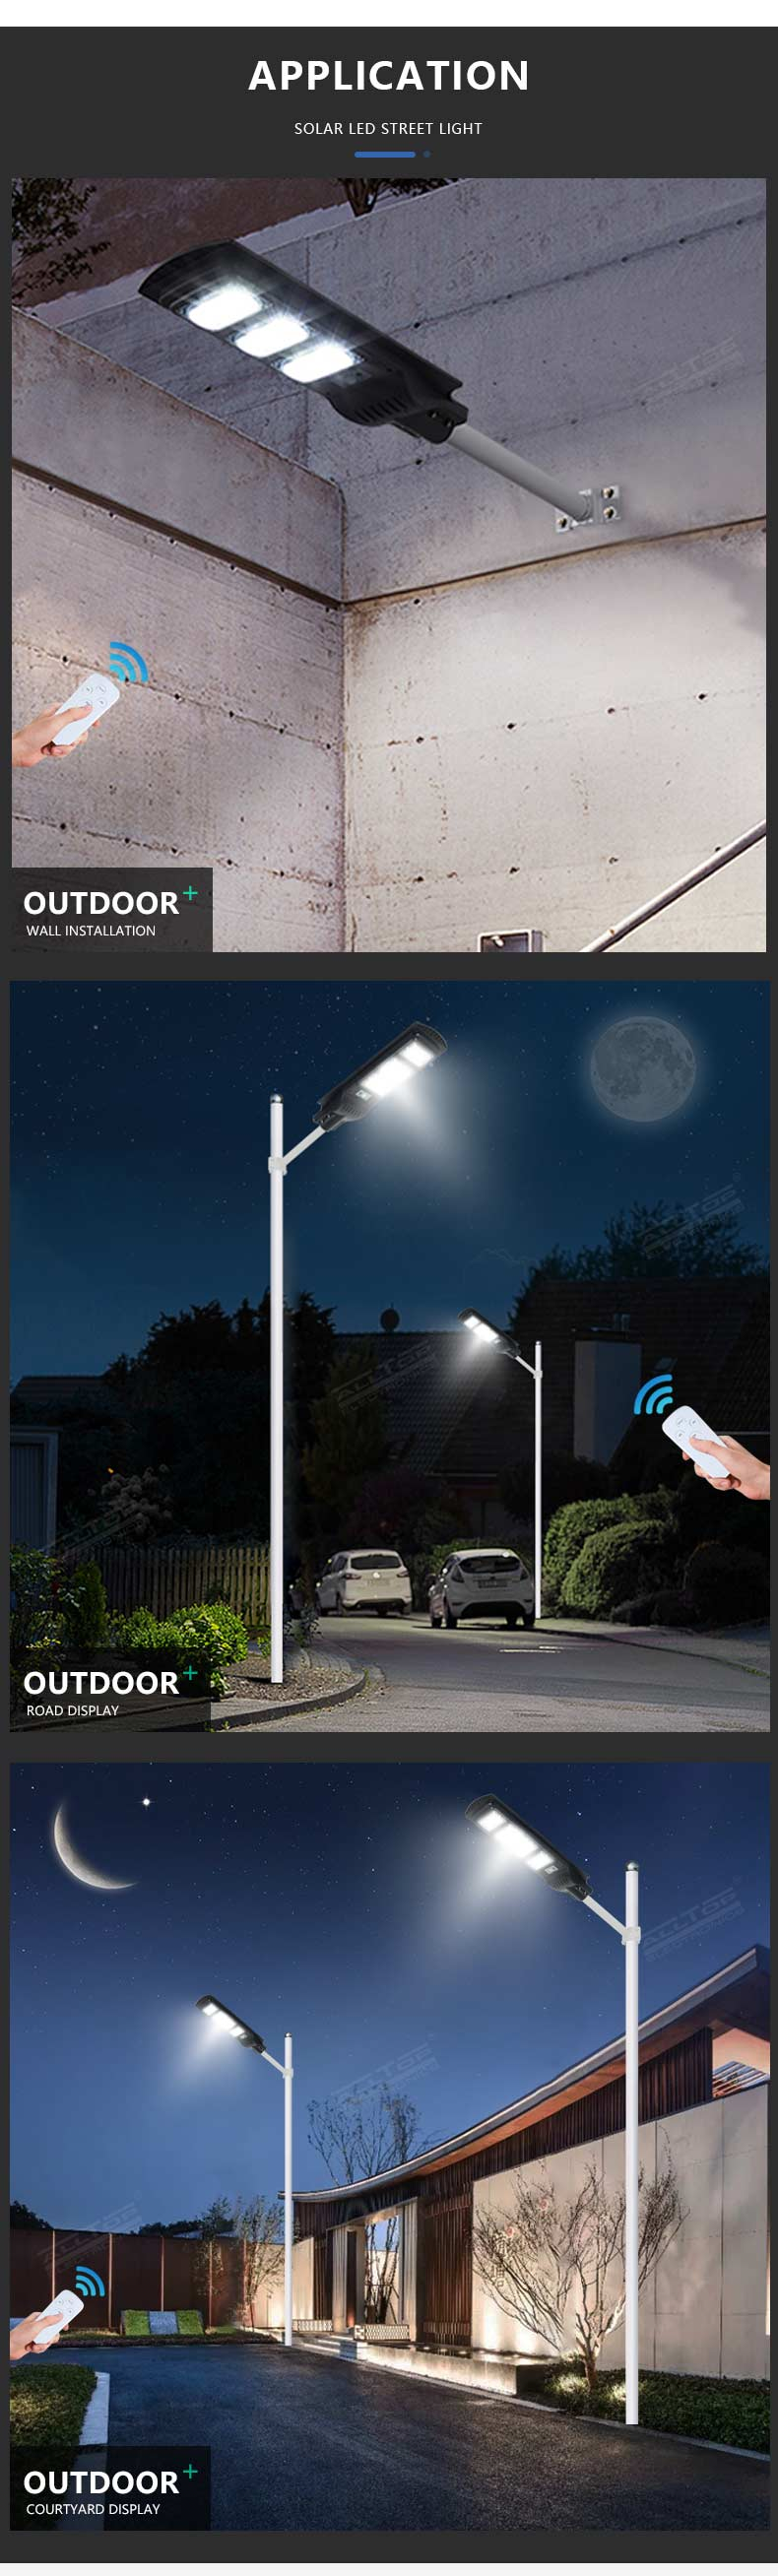 high-quality luminous solar street light high-end manufacturer-15